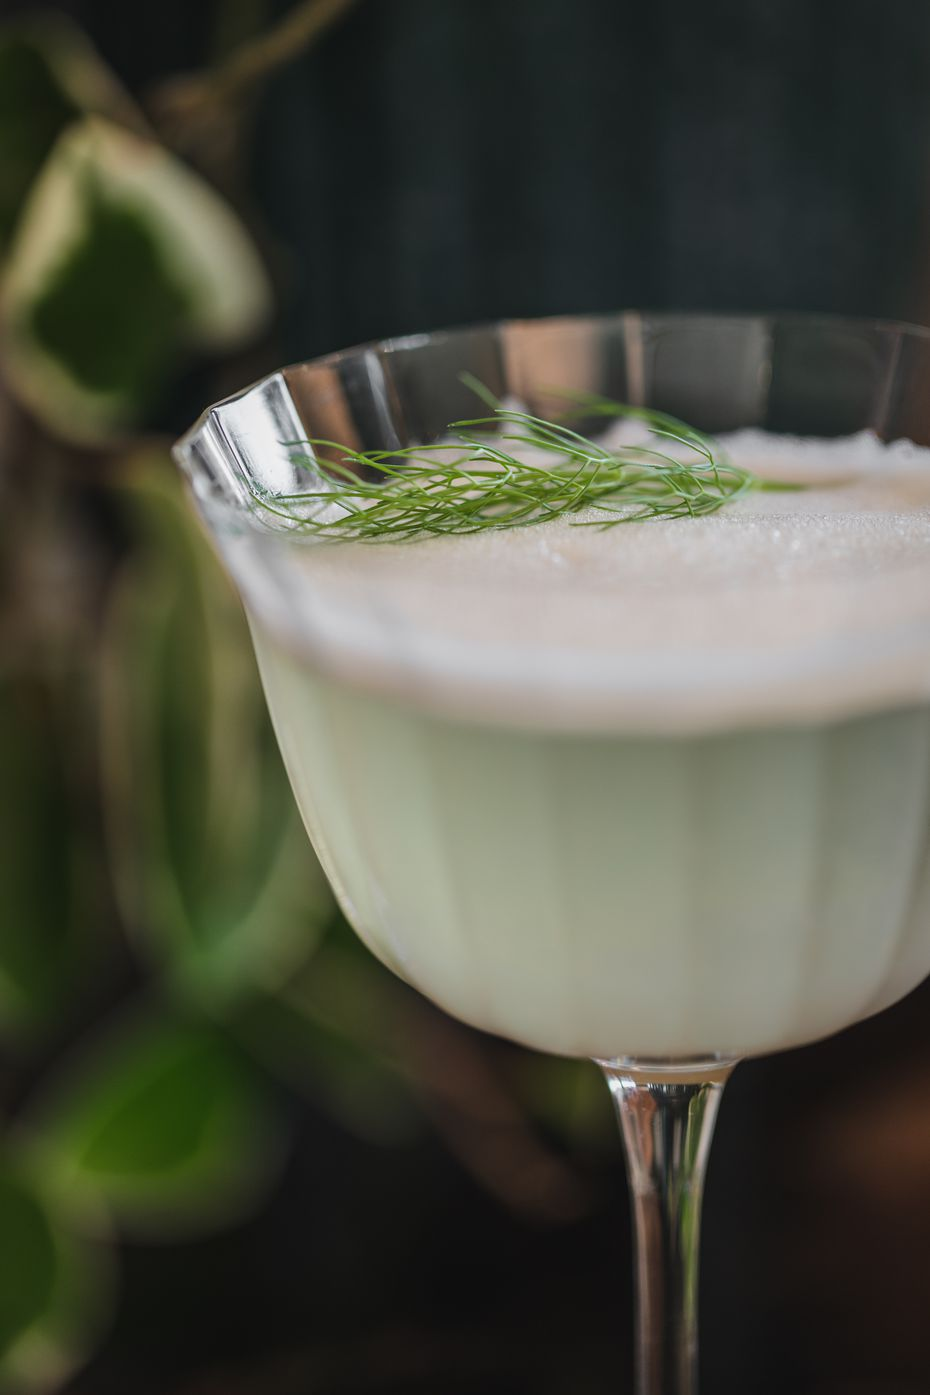 The Garden Fizz is a cocktail made with vodka, pisco, bitter bianco, lemon, egg white and fennel frond sourced from the garden on-site. Director of beverage Anna Krone has come up with a fleet of cocktails for the new restaurants at the Village in Dallas.